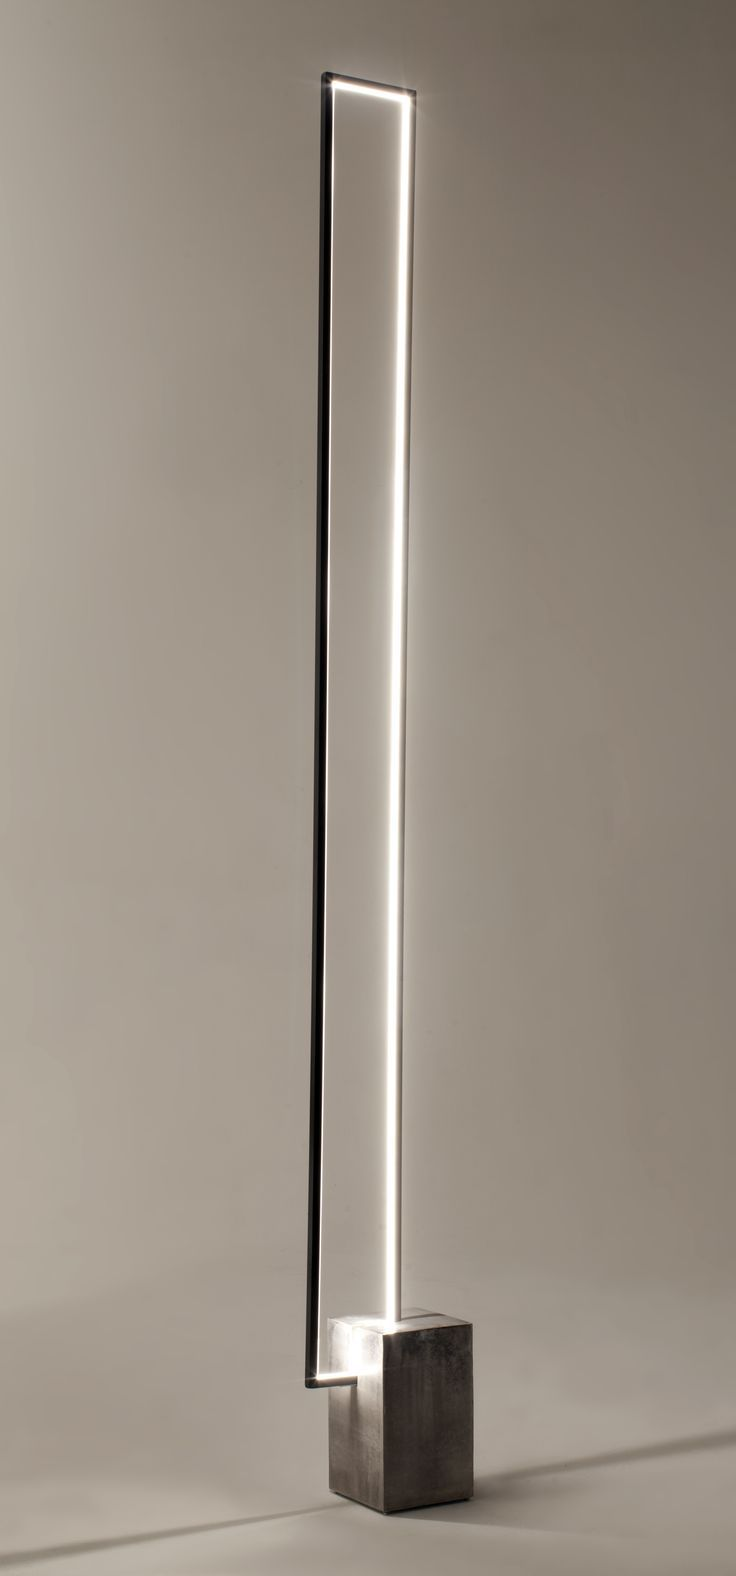 The Mire : A Floor Lamp With A Clear LED Light Strip Inside A Rectangular  Metal Frame